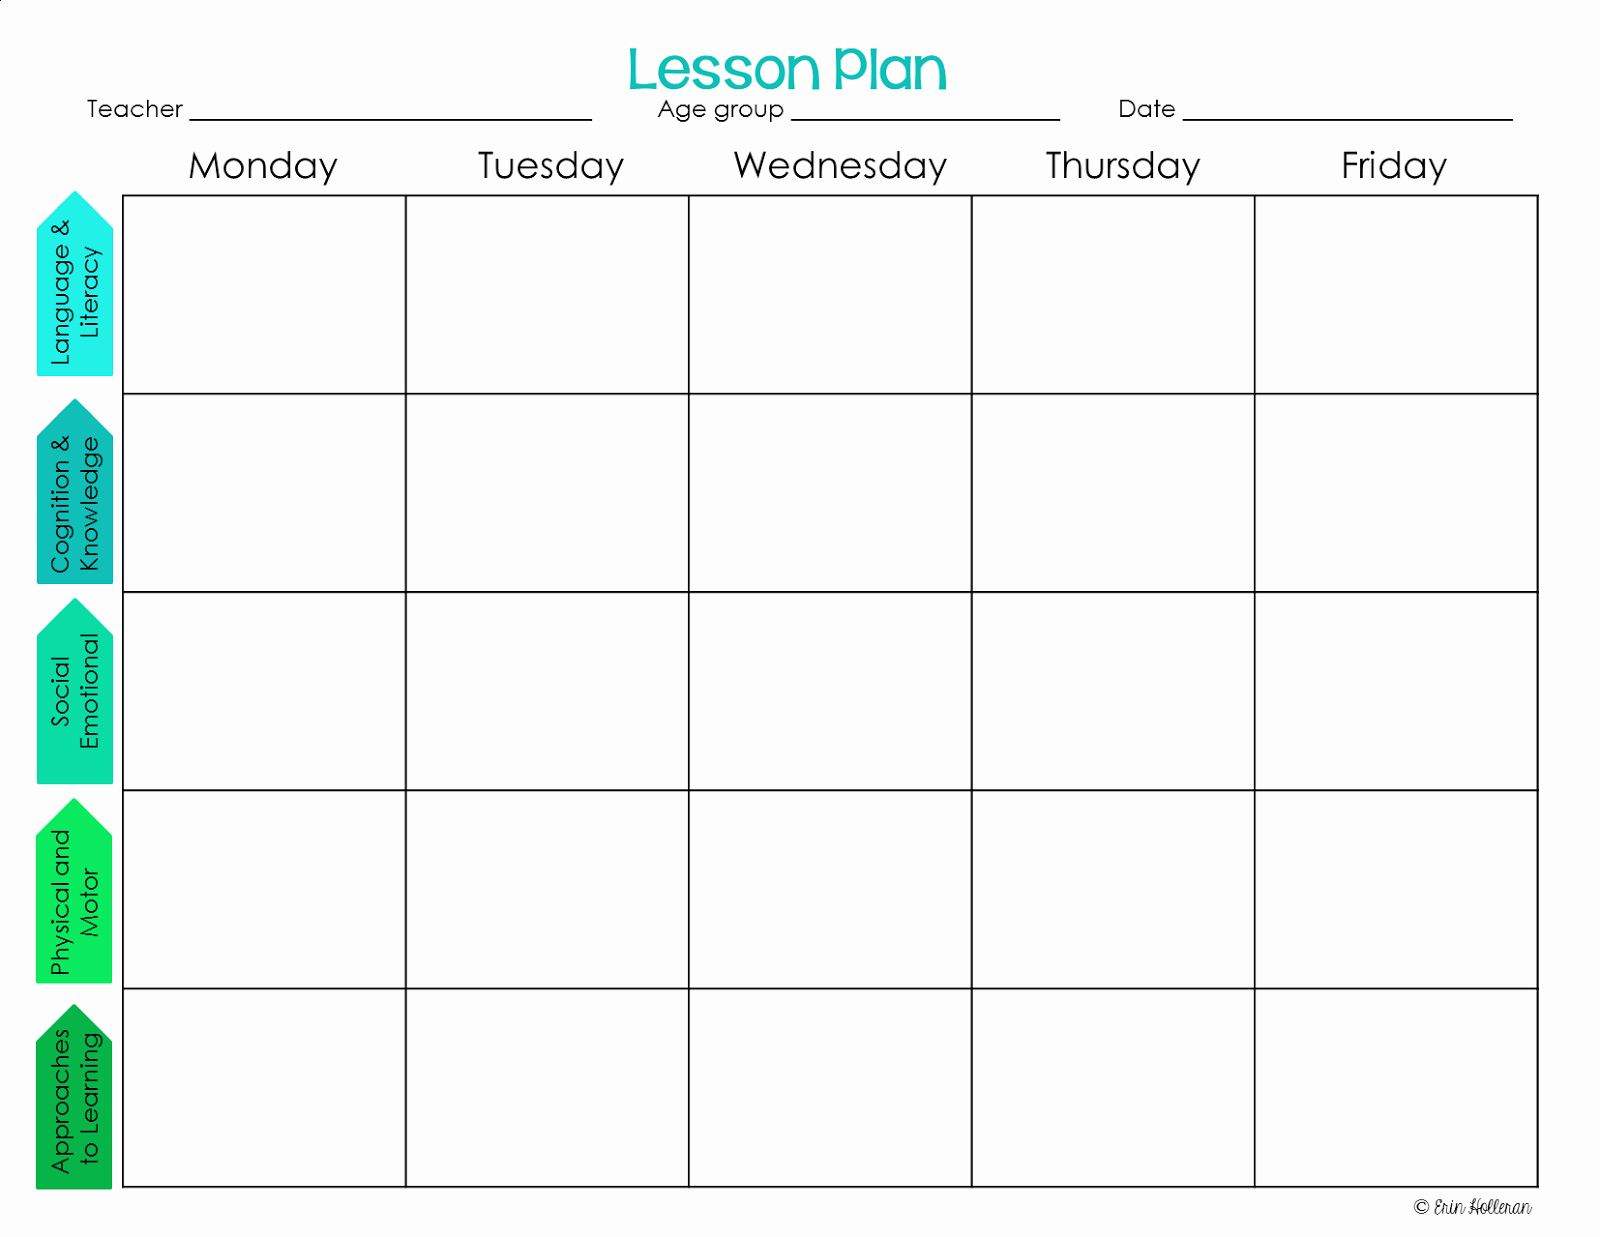 Kindergarten Lesson Plan Template Beautiful Preschool Ponderings Make Your Lesson Plans Work for You